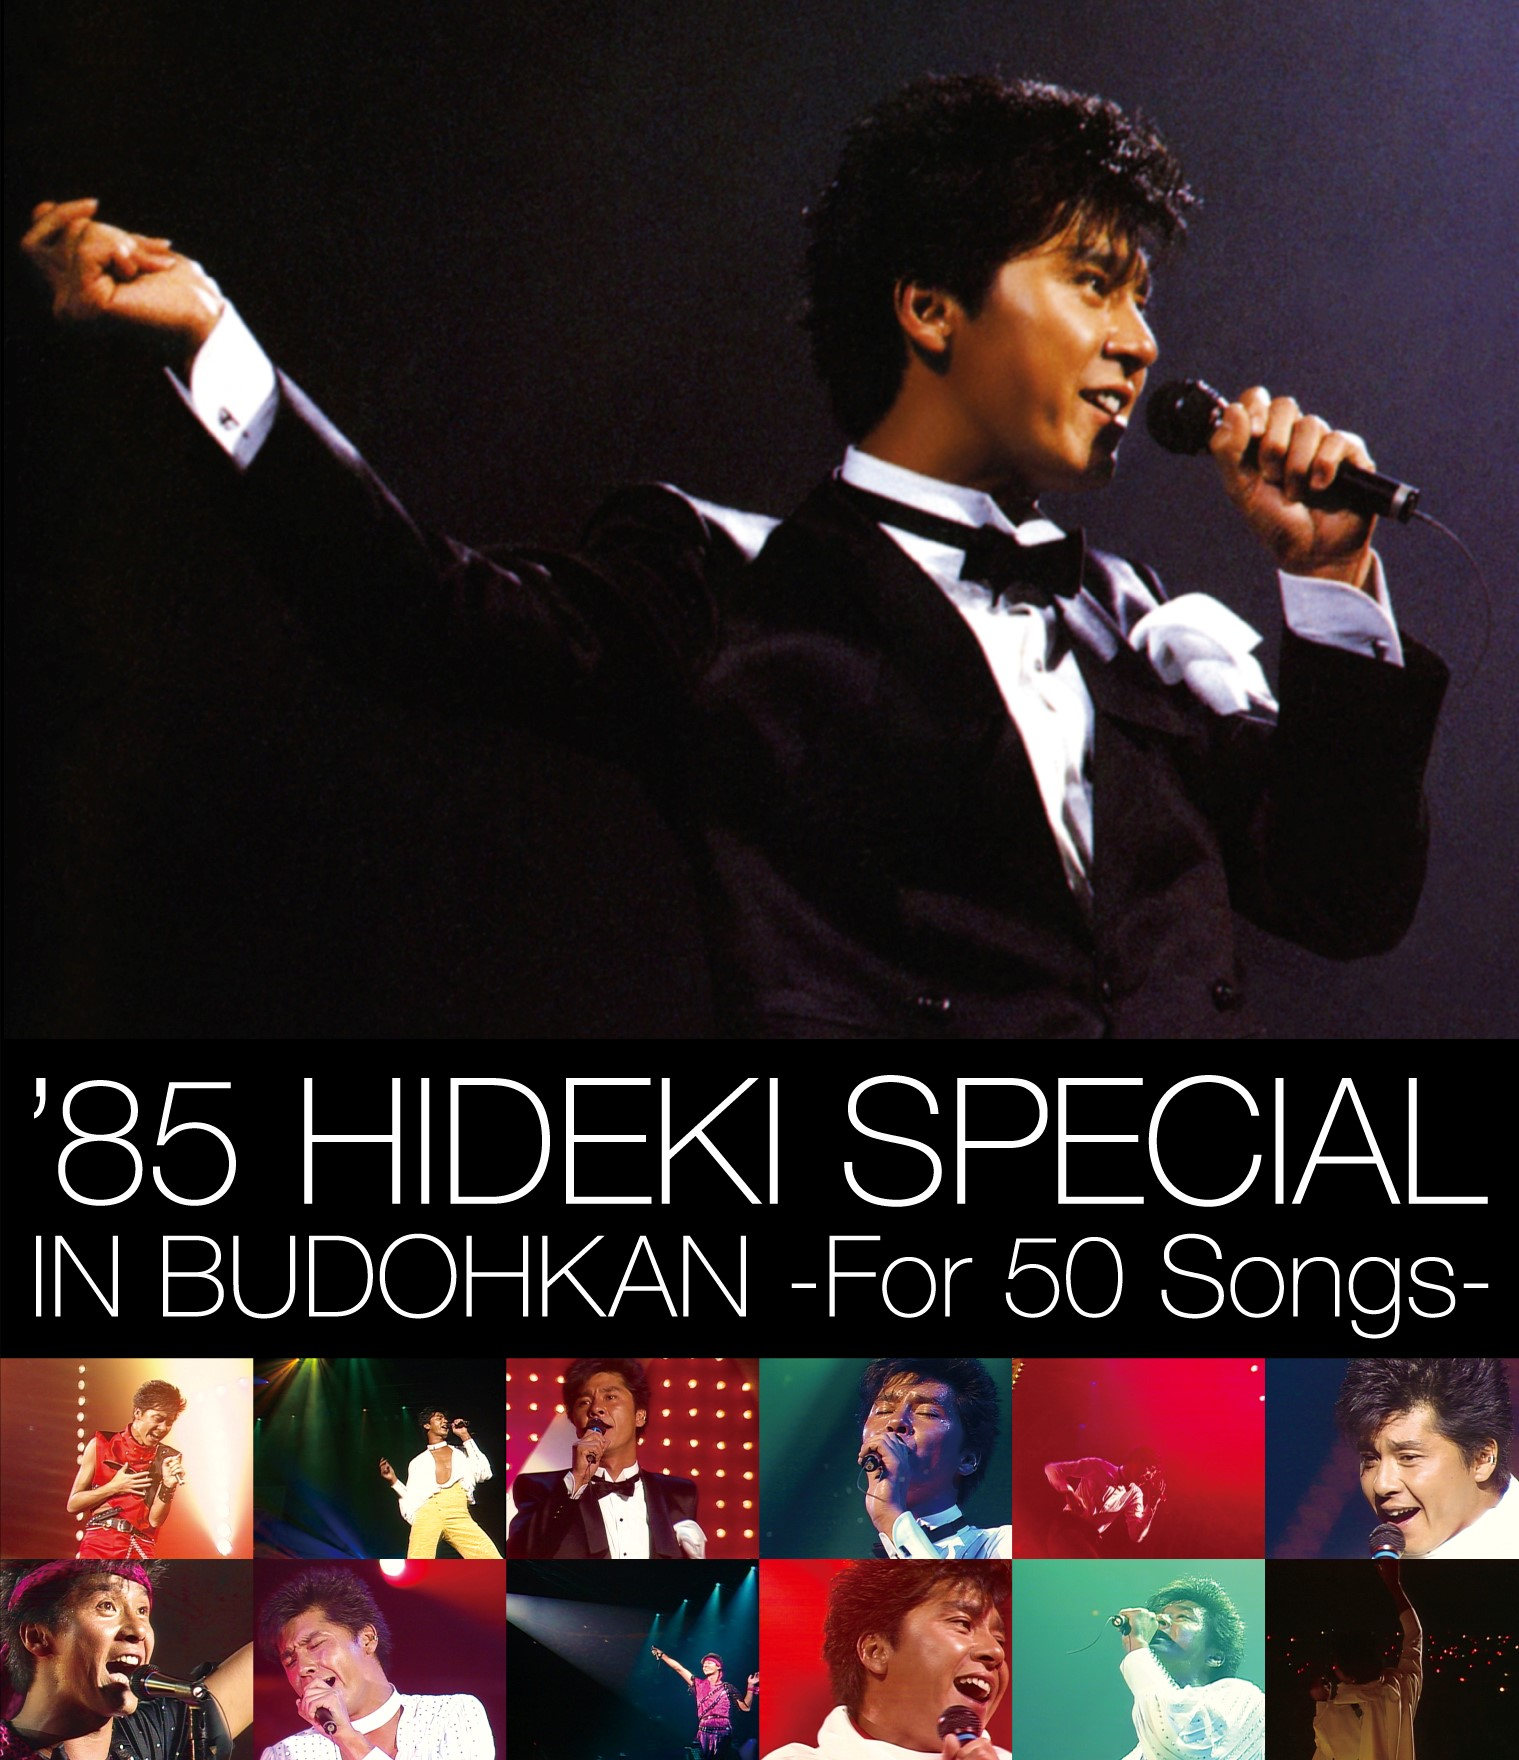 '85 HIDEKI SPECIAL IN BUDOHKAN-For 50 Songs-